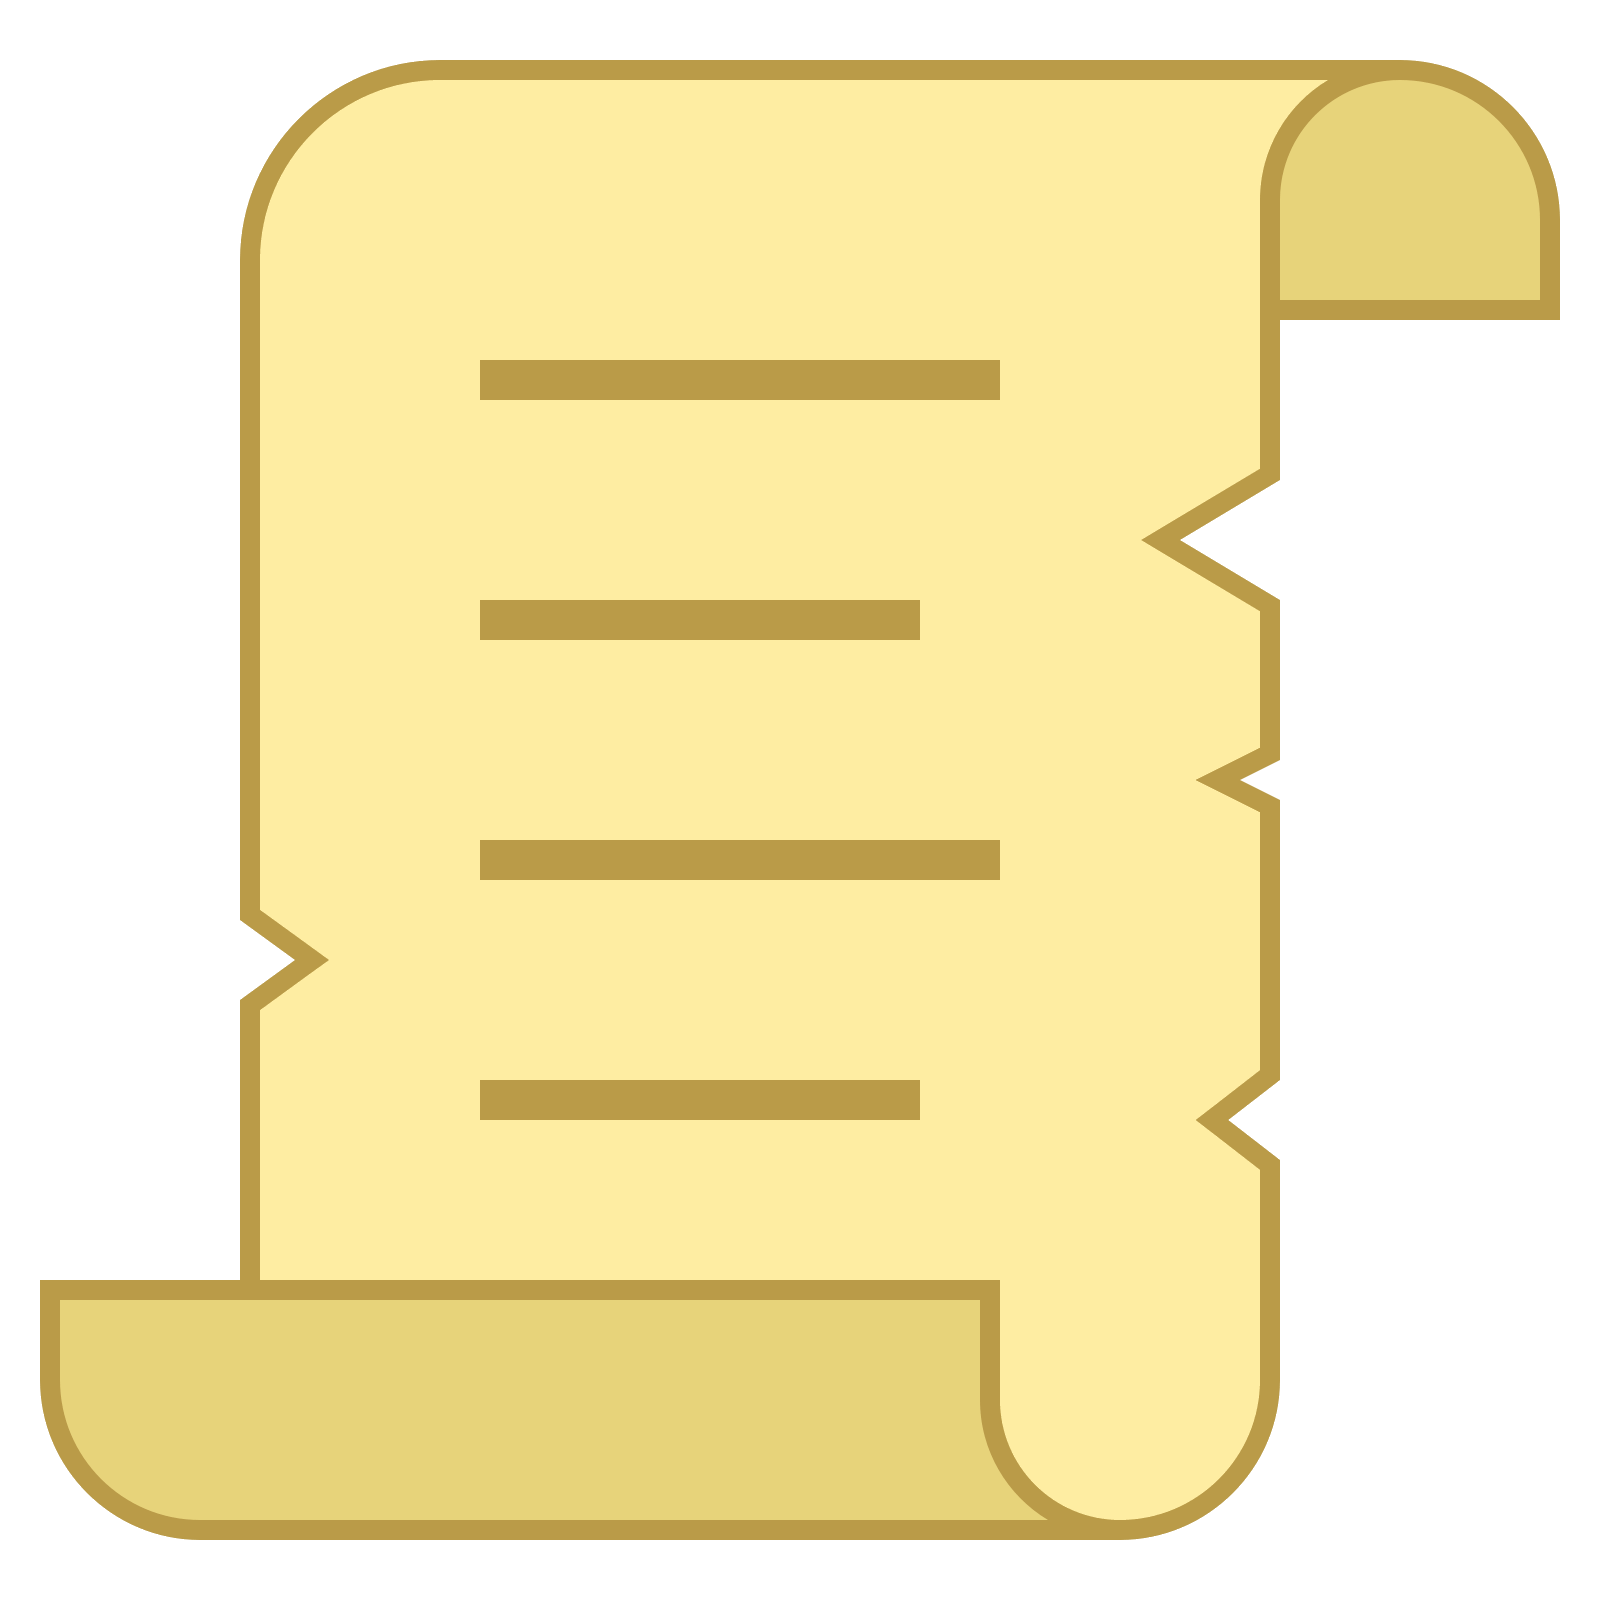 Old parchment png. Icon there is